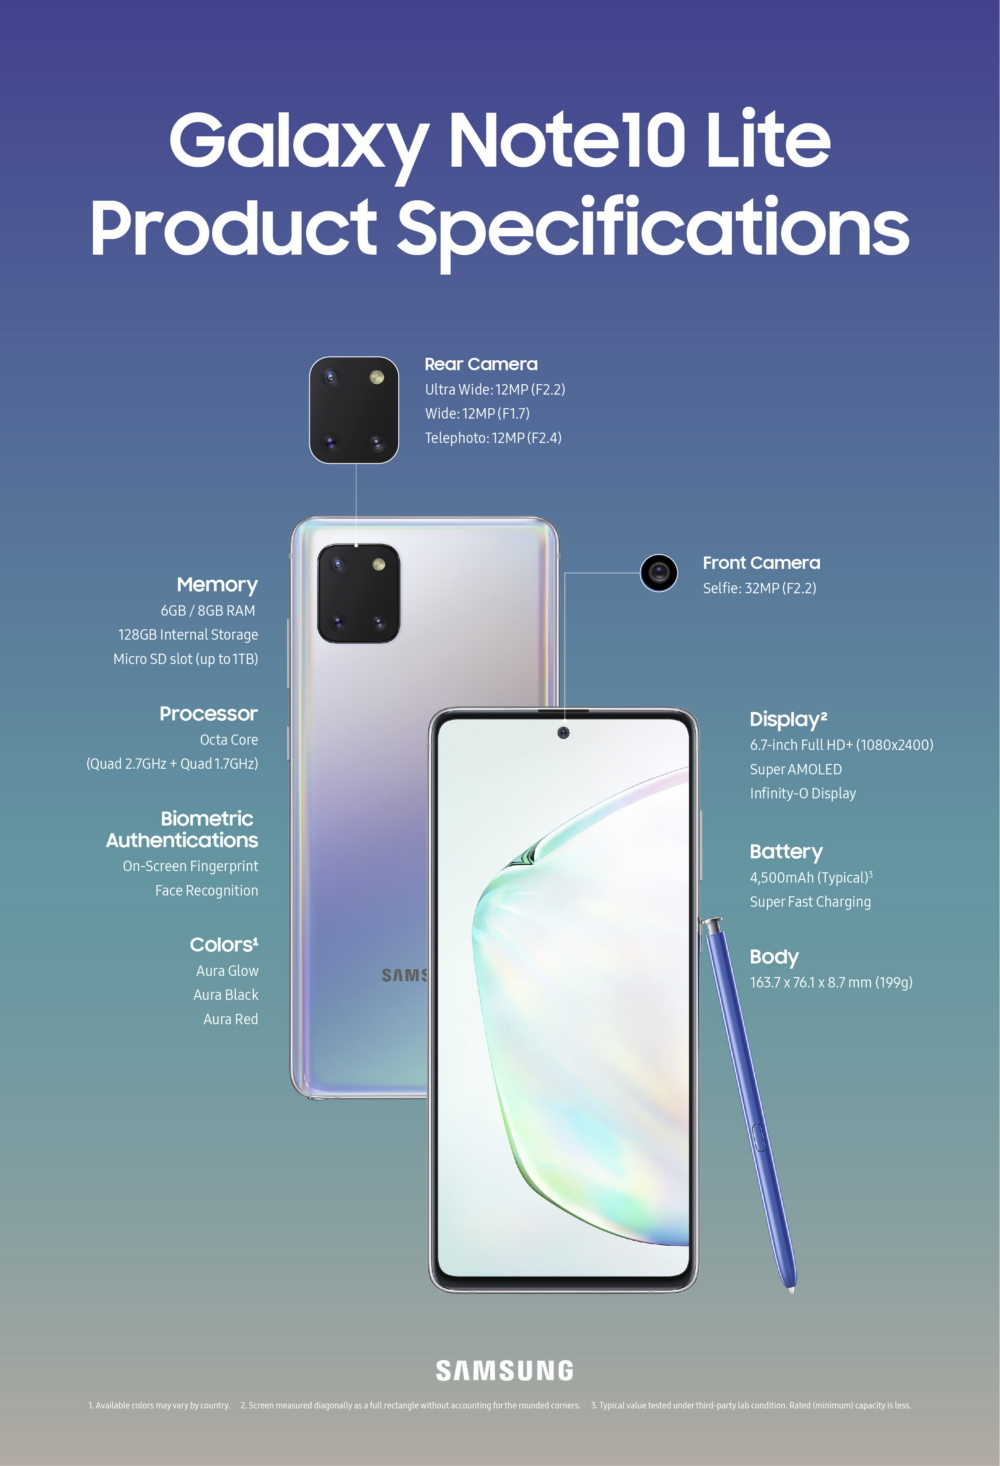 galaxy-note10-lite-s10-lite-infographic_main2